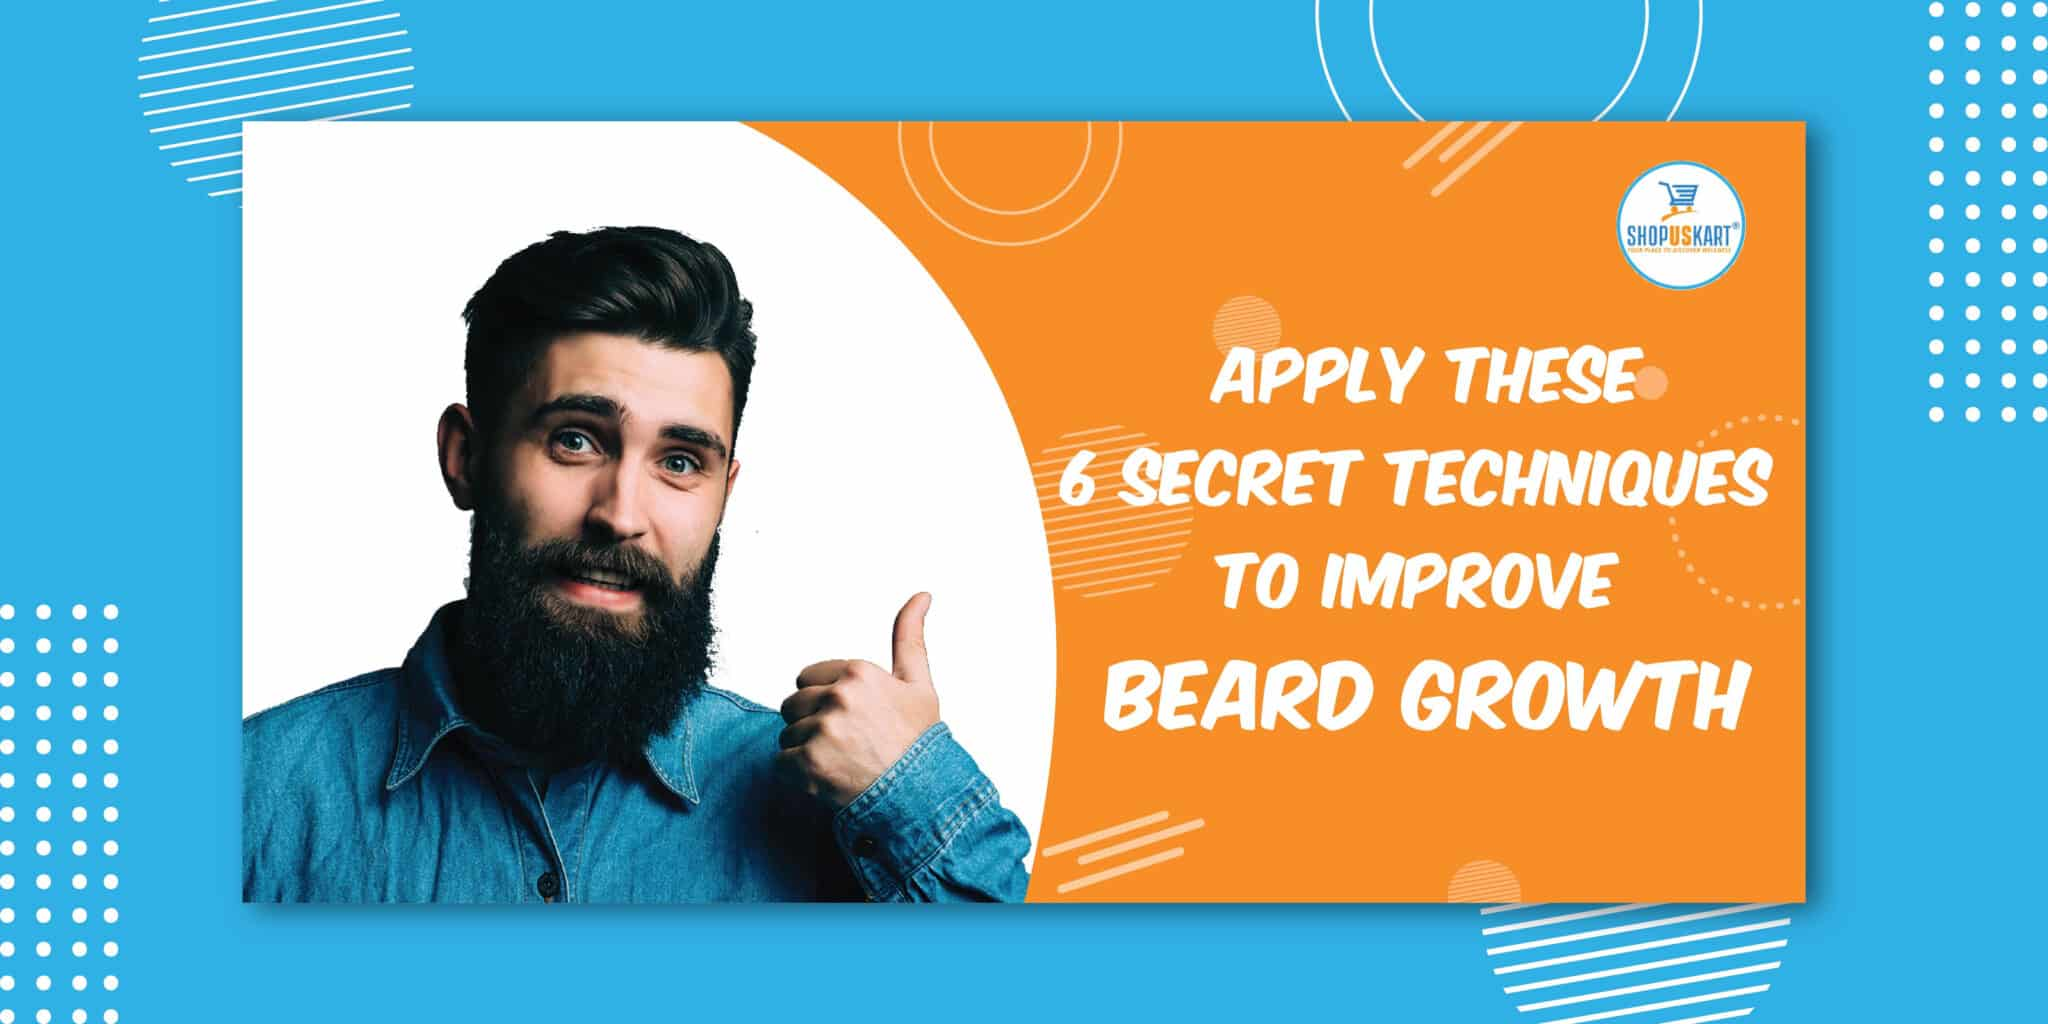 Apply These 6 Secret Techniques to Improve Beard Growth